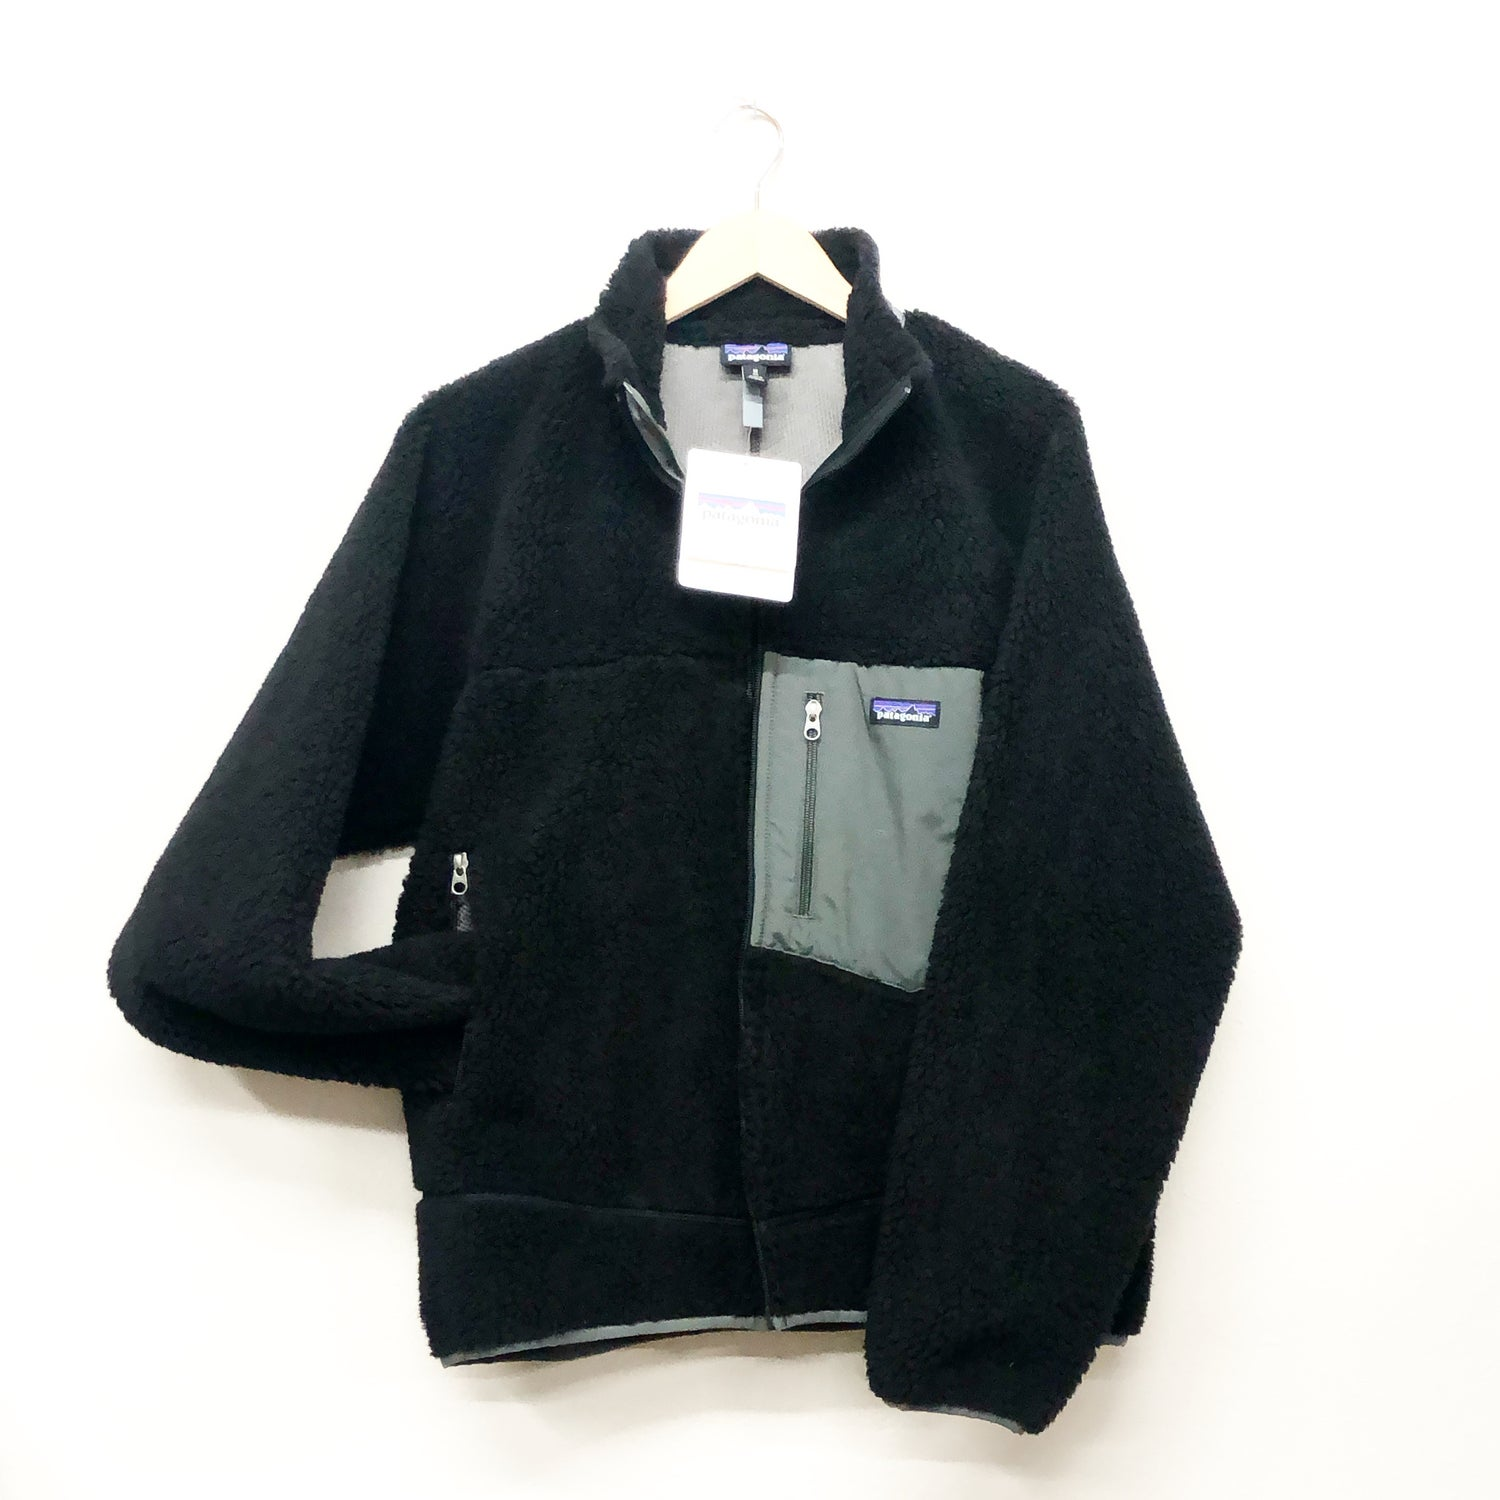 Image of Deadstock Patagonia Retro X Black M's Medium